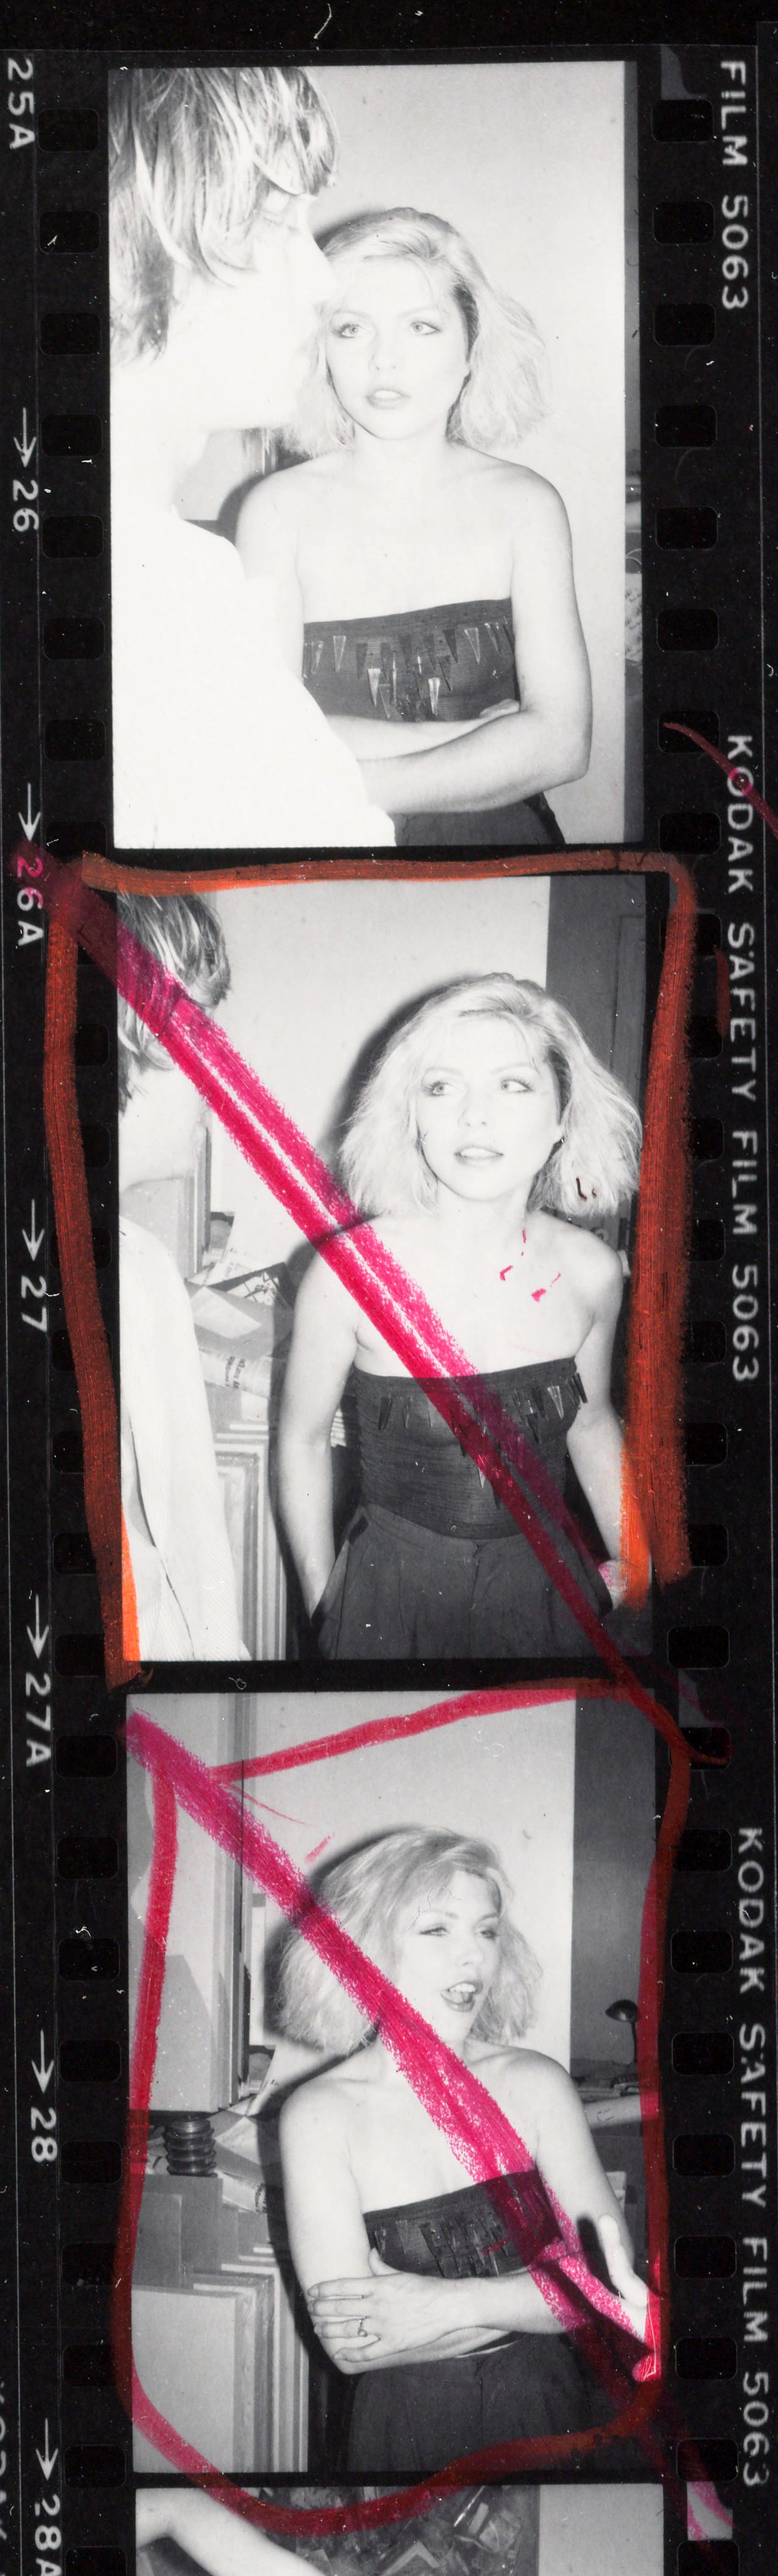 Andy Warhol contact sheet with debbie harry, chris stein